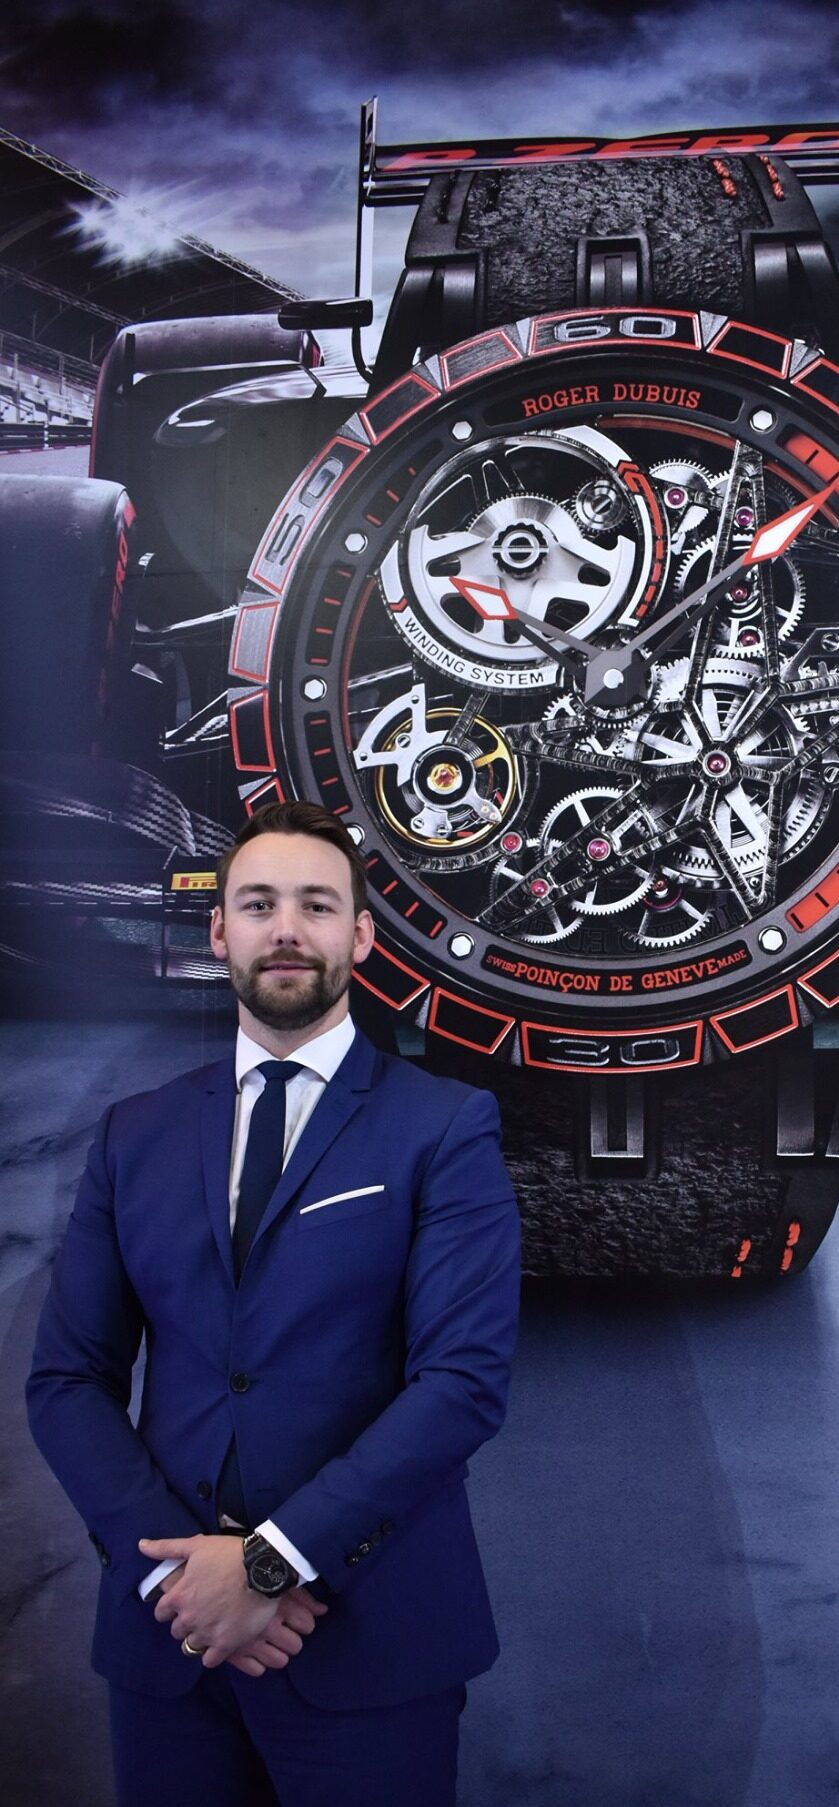 Excalibur Roger Dubuis